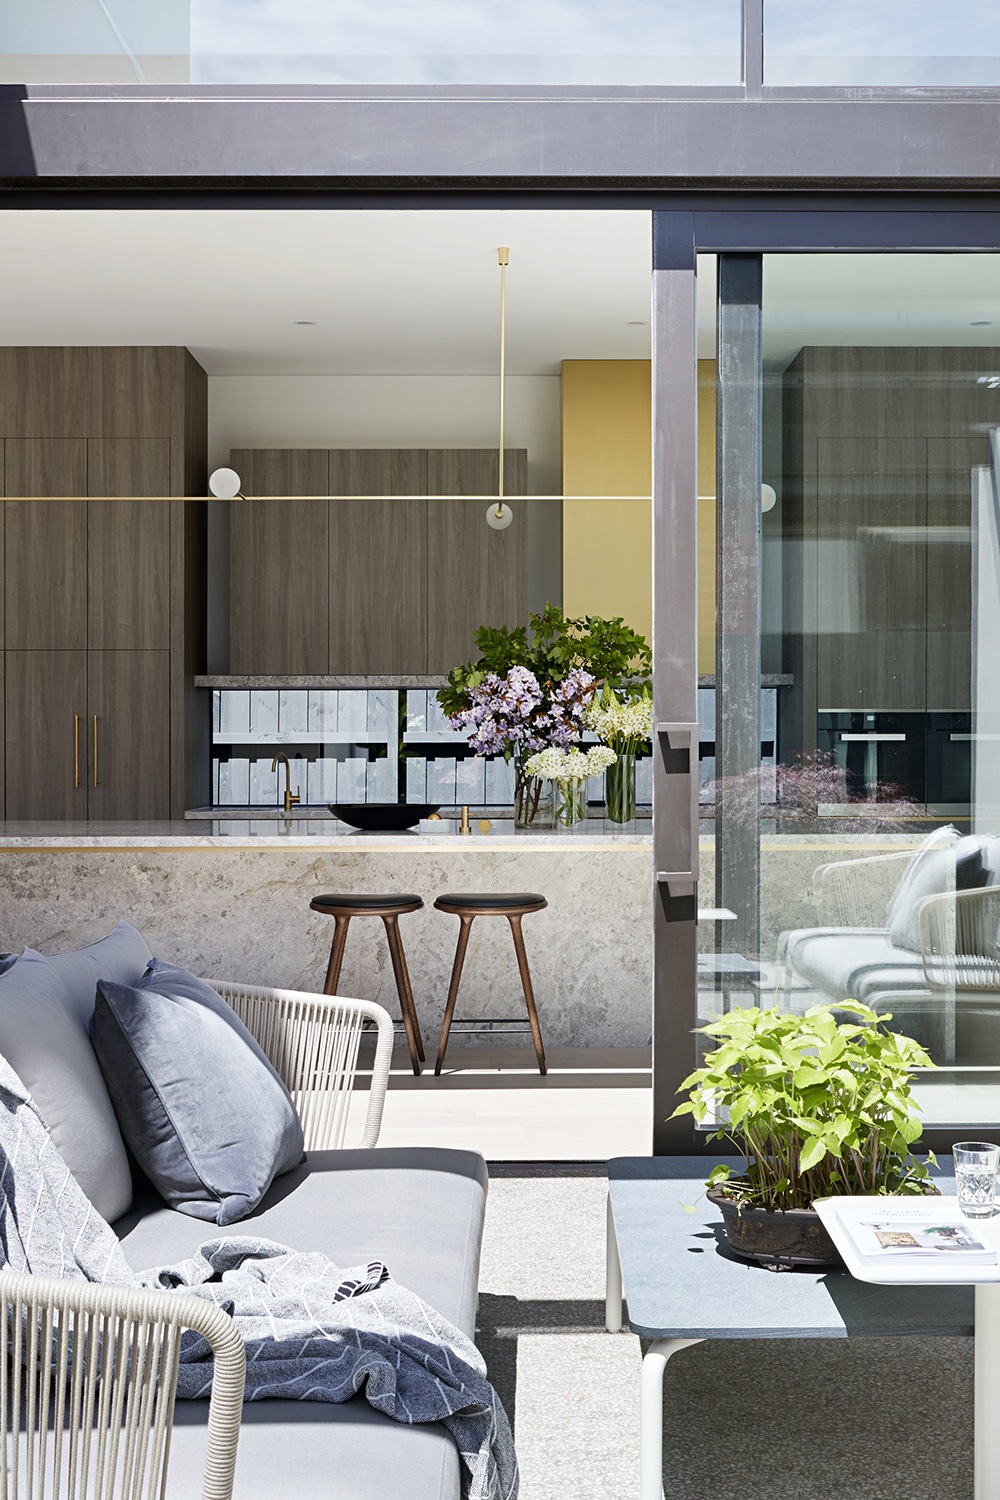 The Concrete Conceal House By Tecture Local Australian Design & Interiors Caulfield, Melbourne Image 10